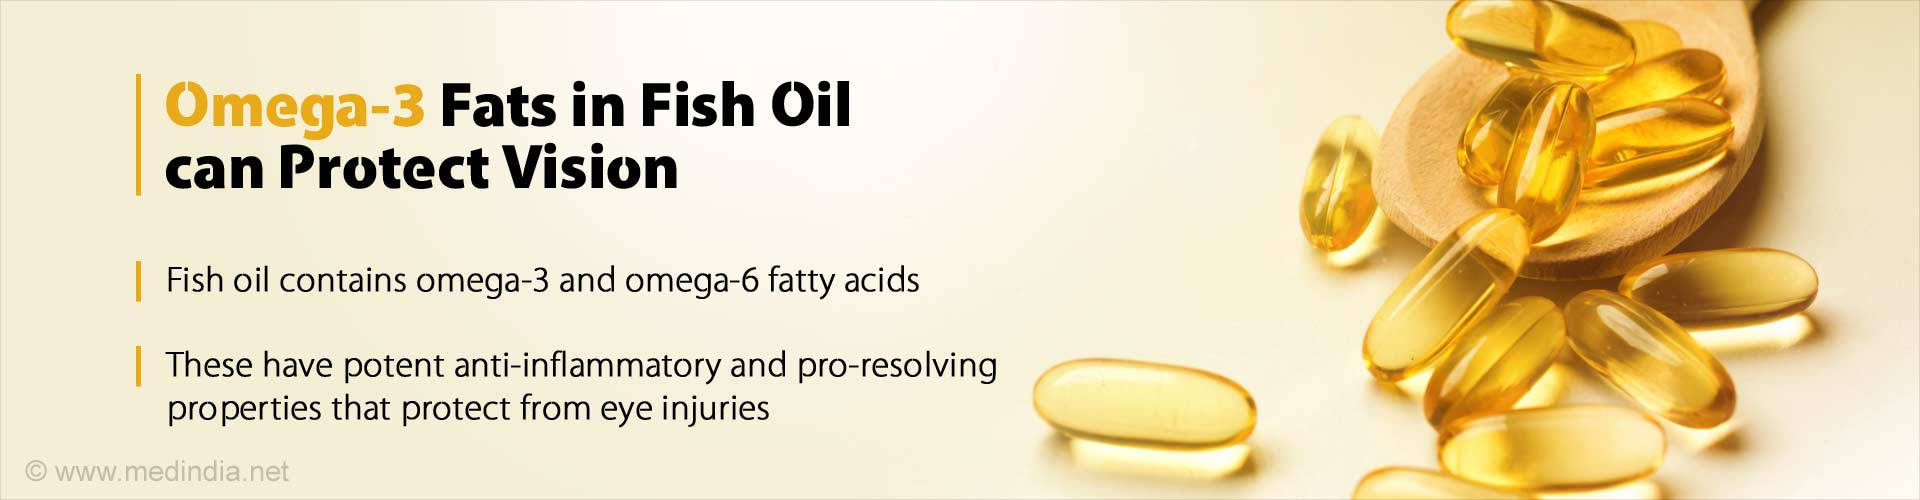 Omega-3 Fats in Fish Oil can Protect Vision